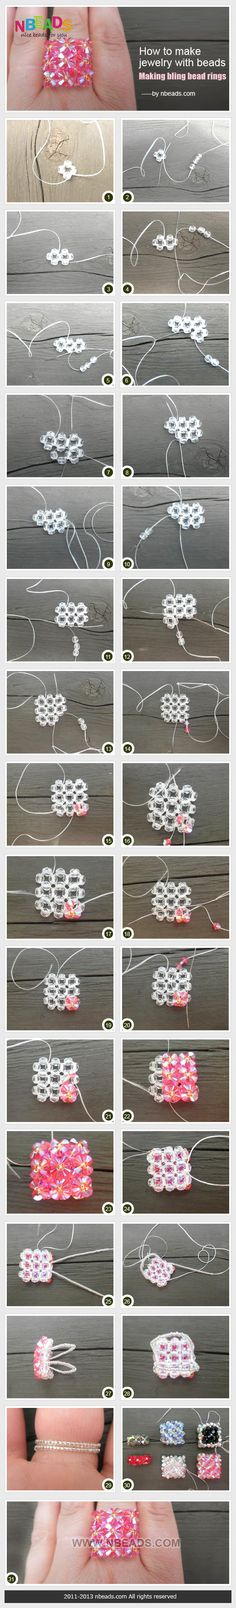 how to make jewelry with beads - making bling bead rings